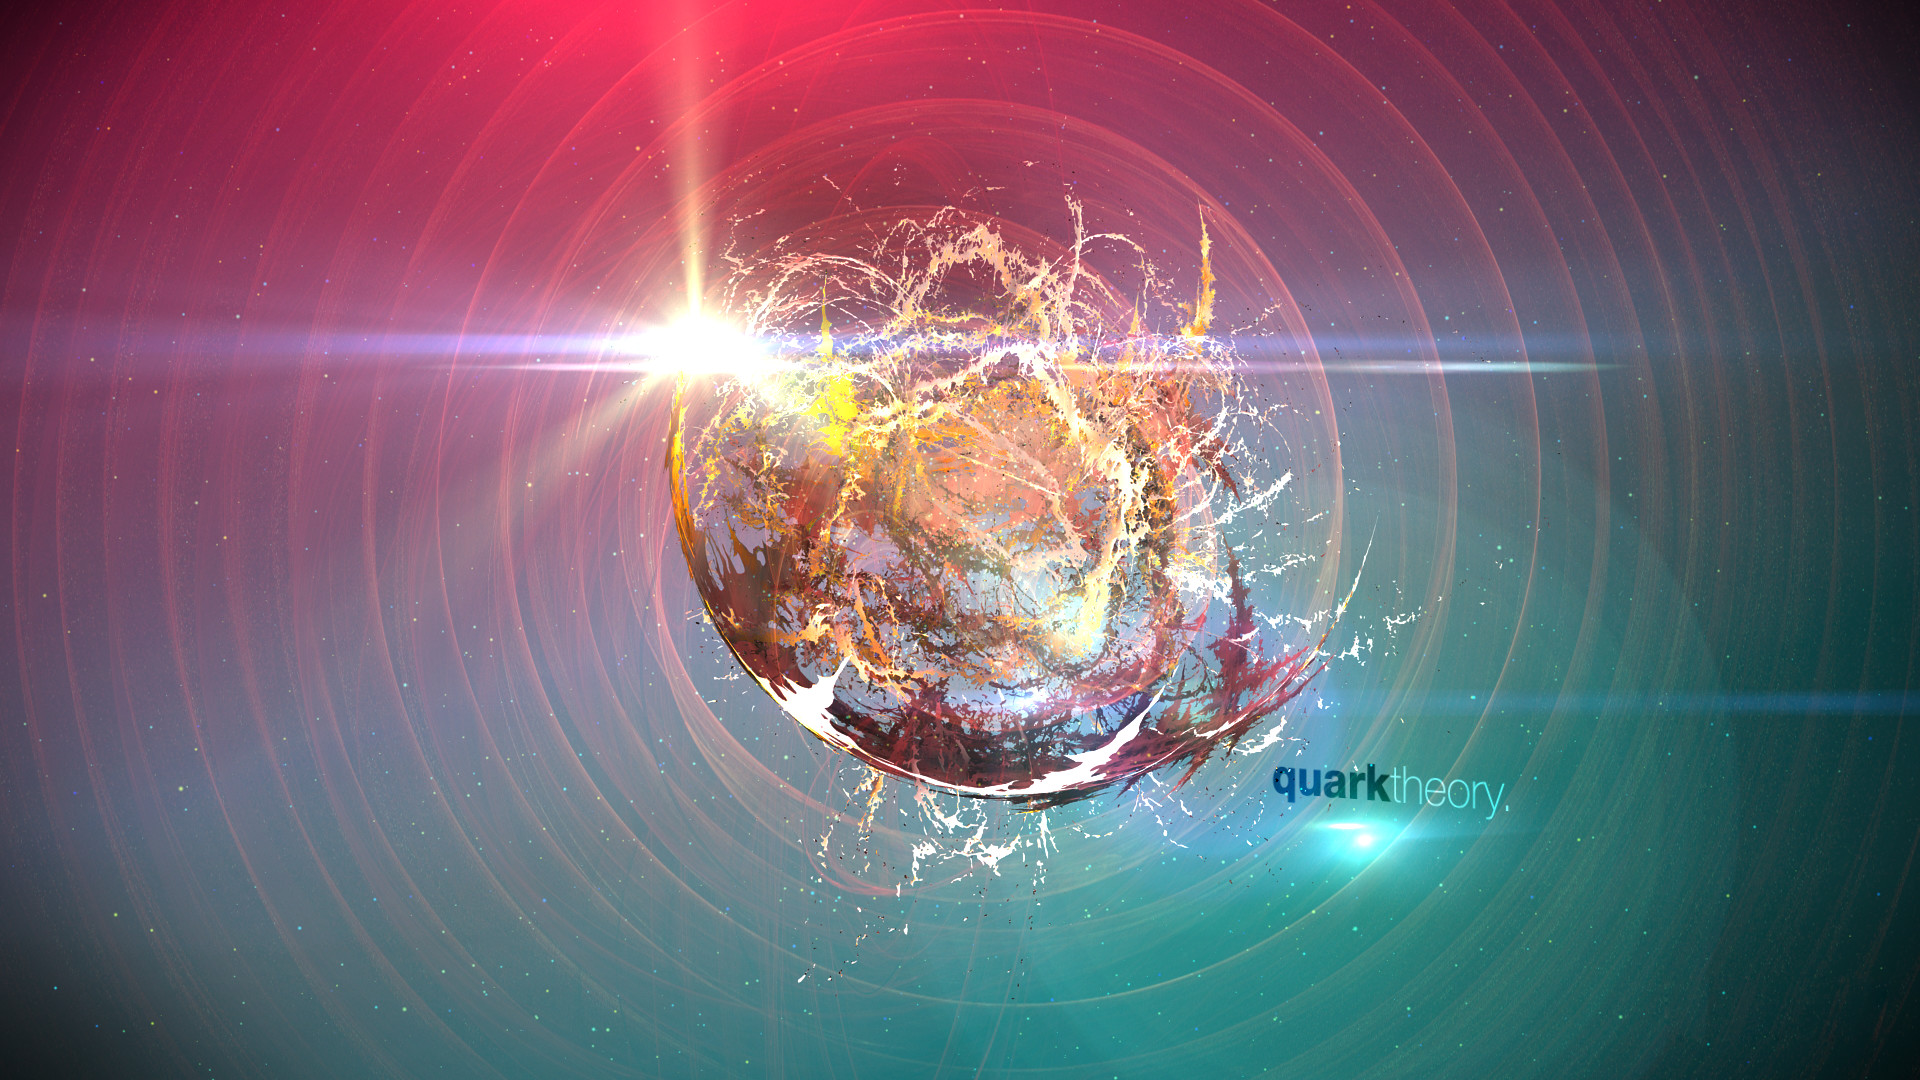 Download Free Islamic Wallpaper HD Quantum Physics Background Abstract …